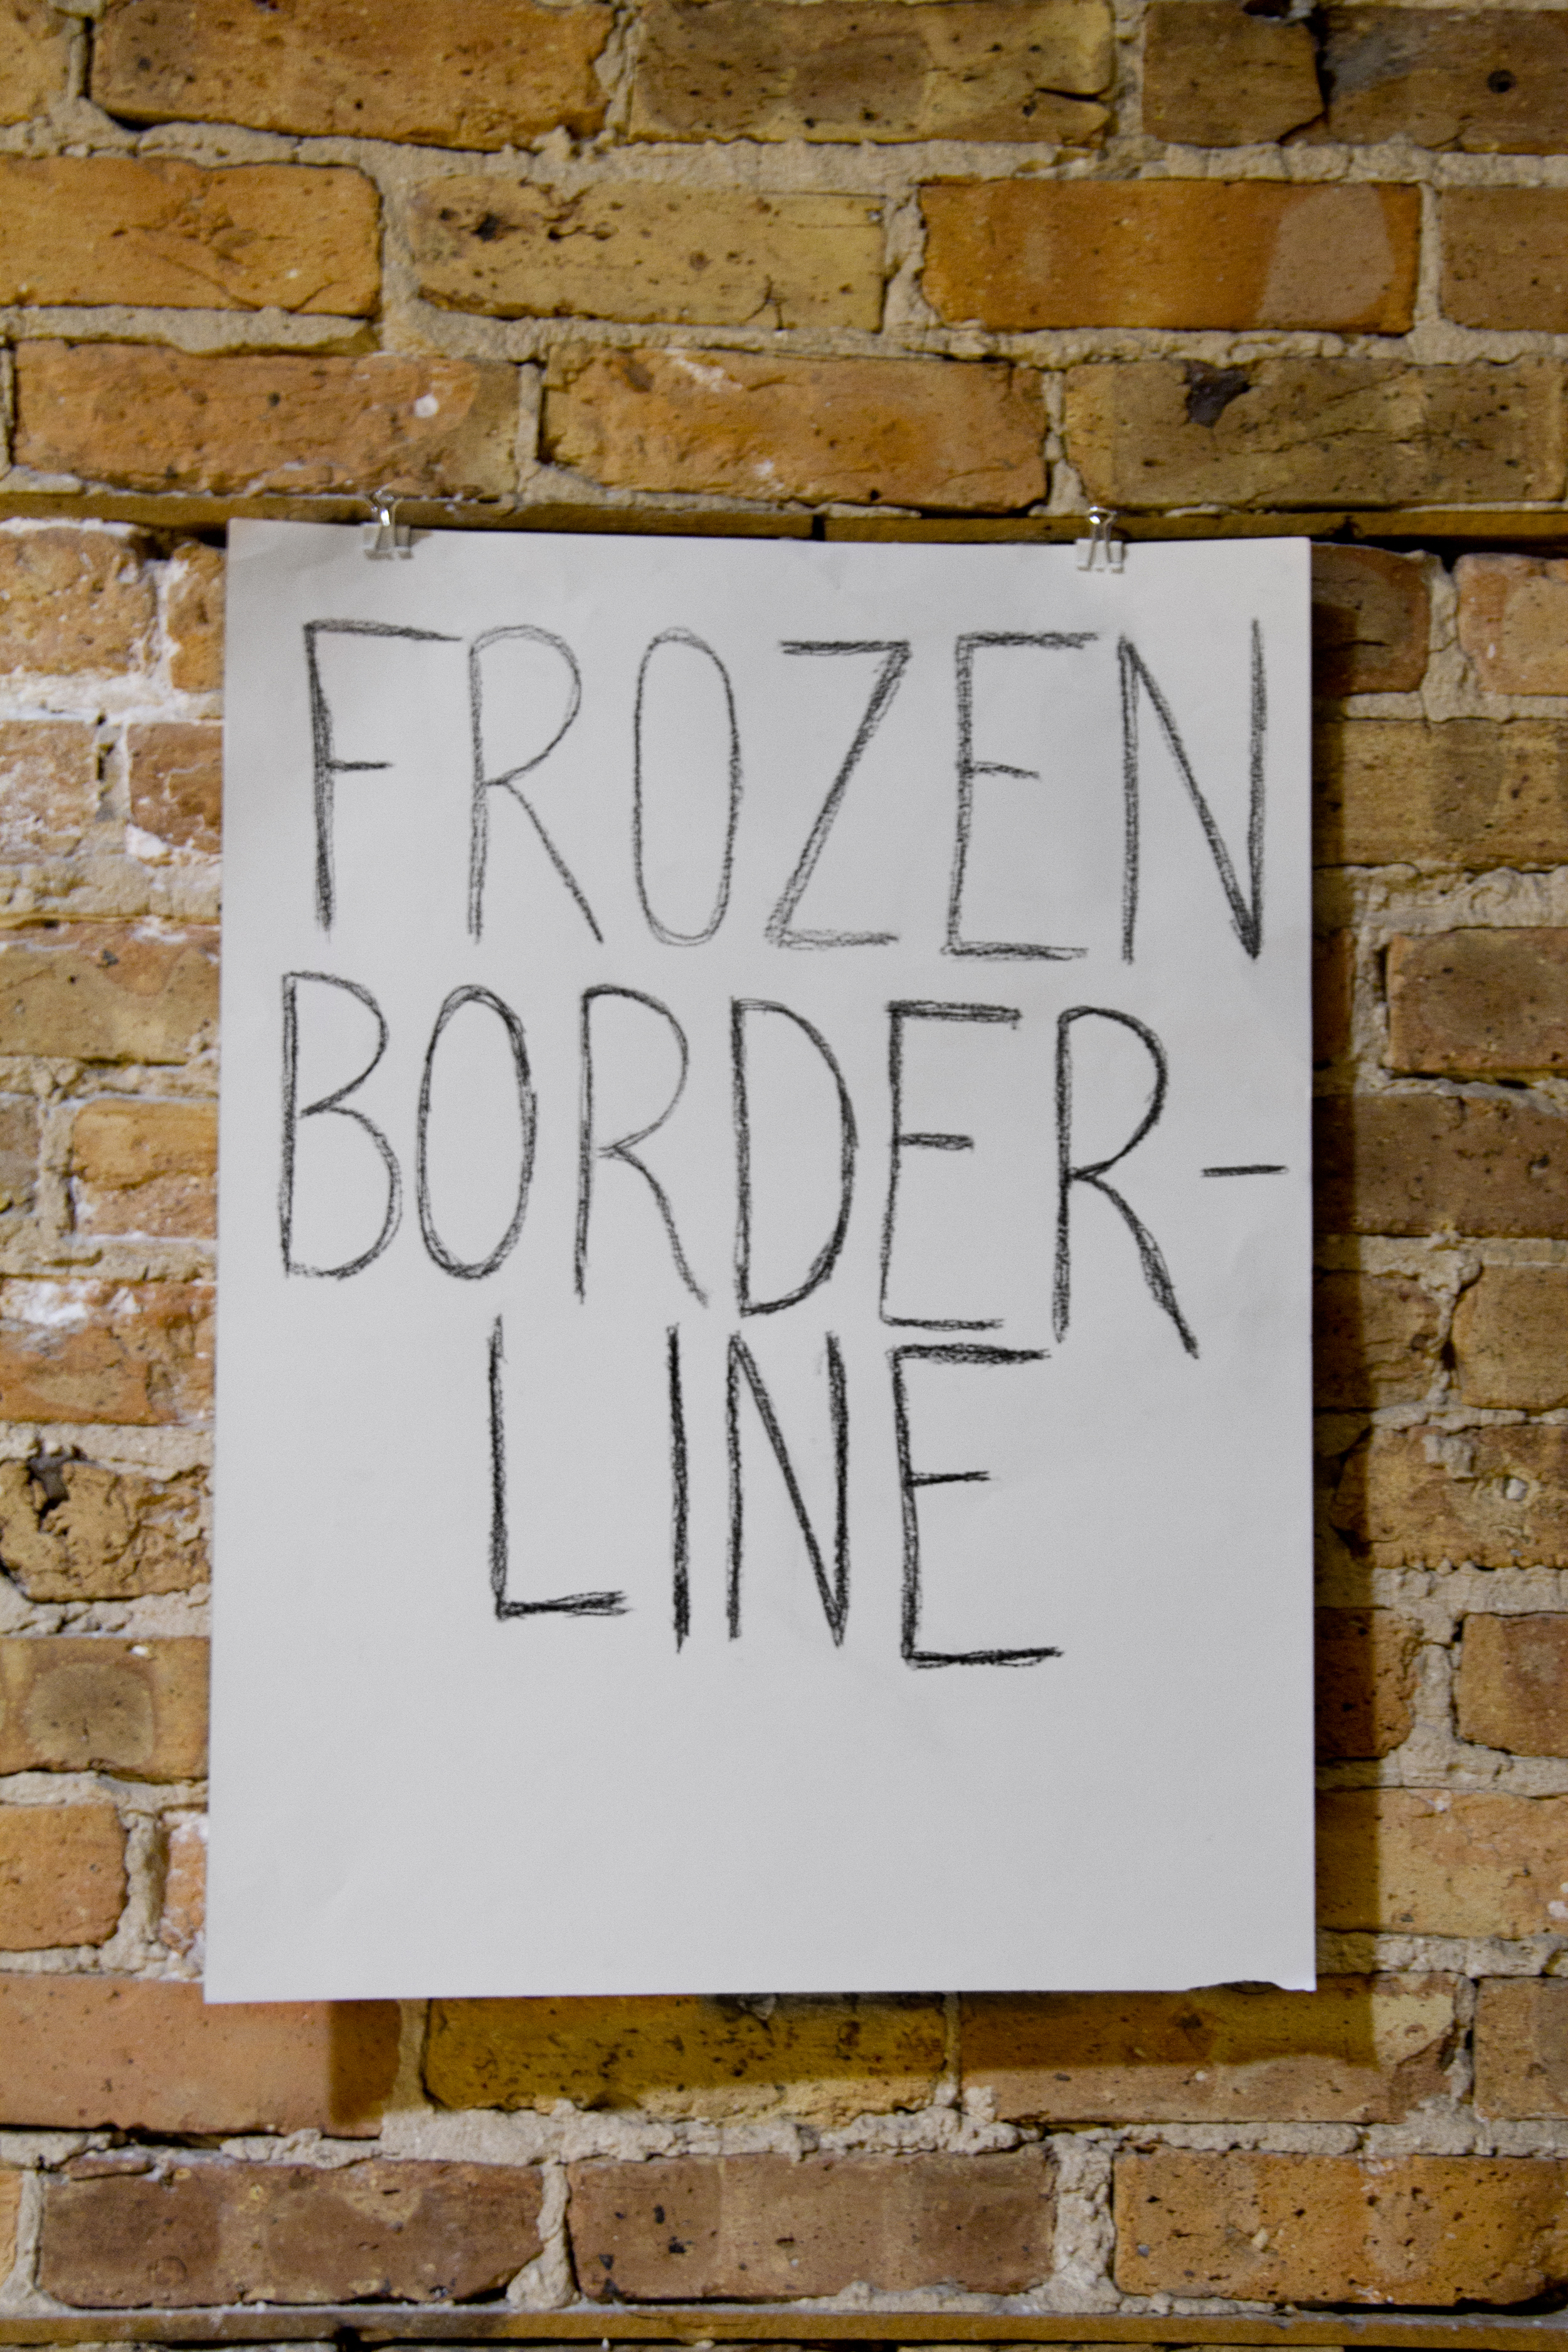 BallroomProjects_FrozenBorderline16_dfloyd.jpg